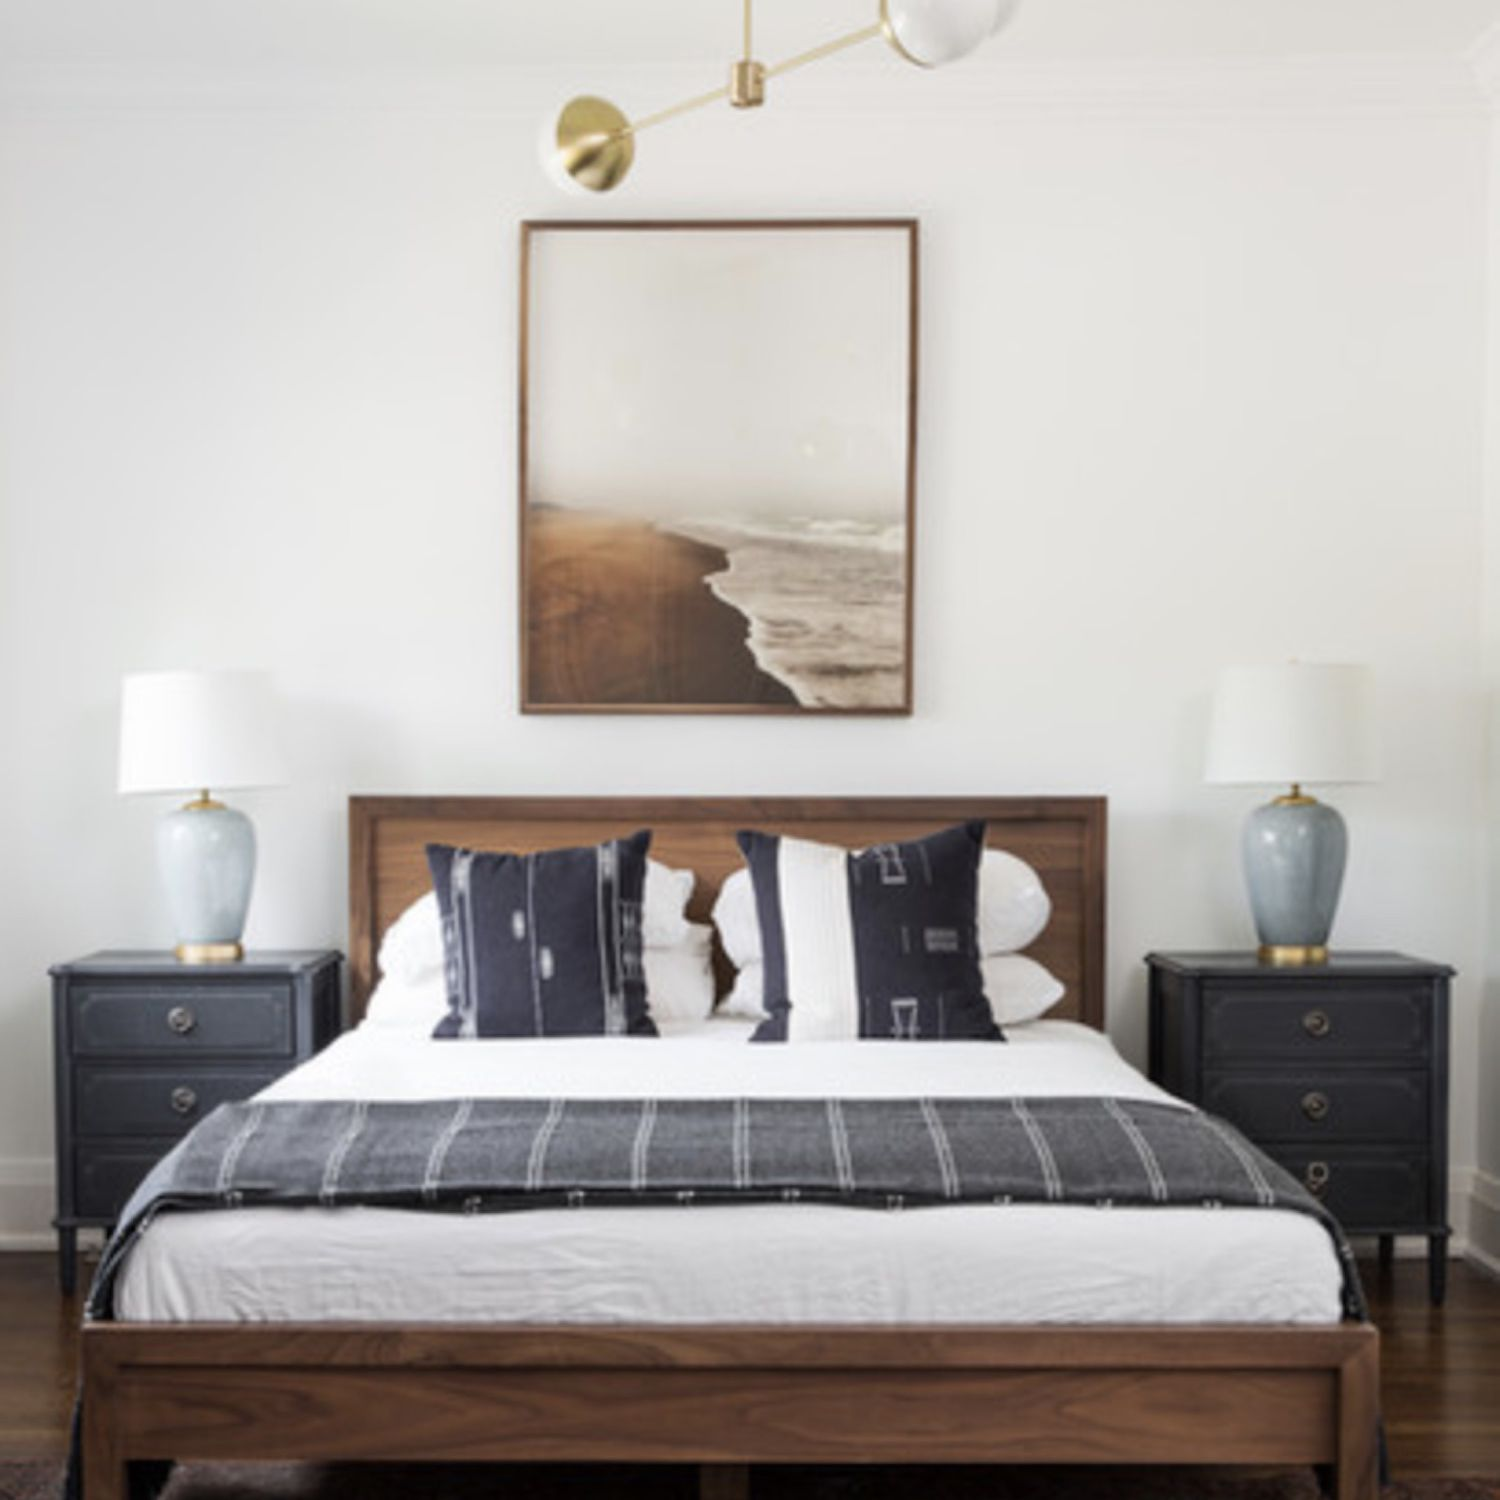 bedroom with wooden headboard, blue and white and brown color scheme, modern light fixture on ceiling